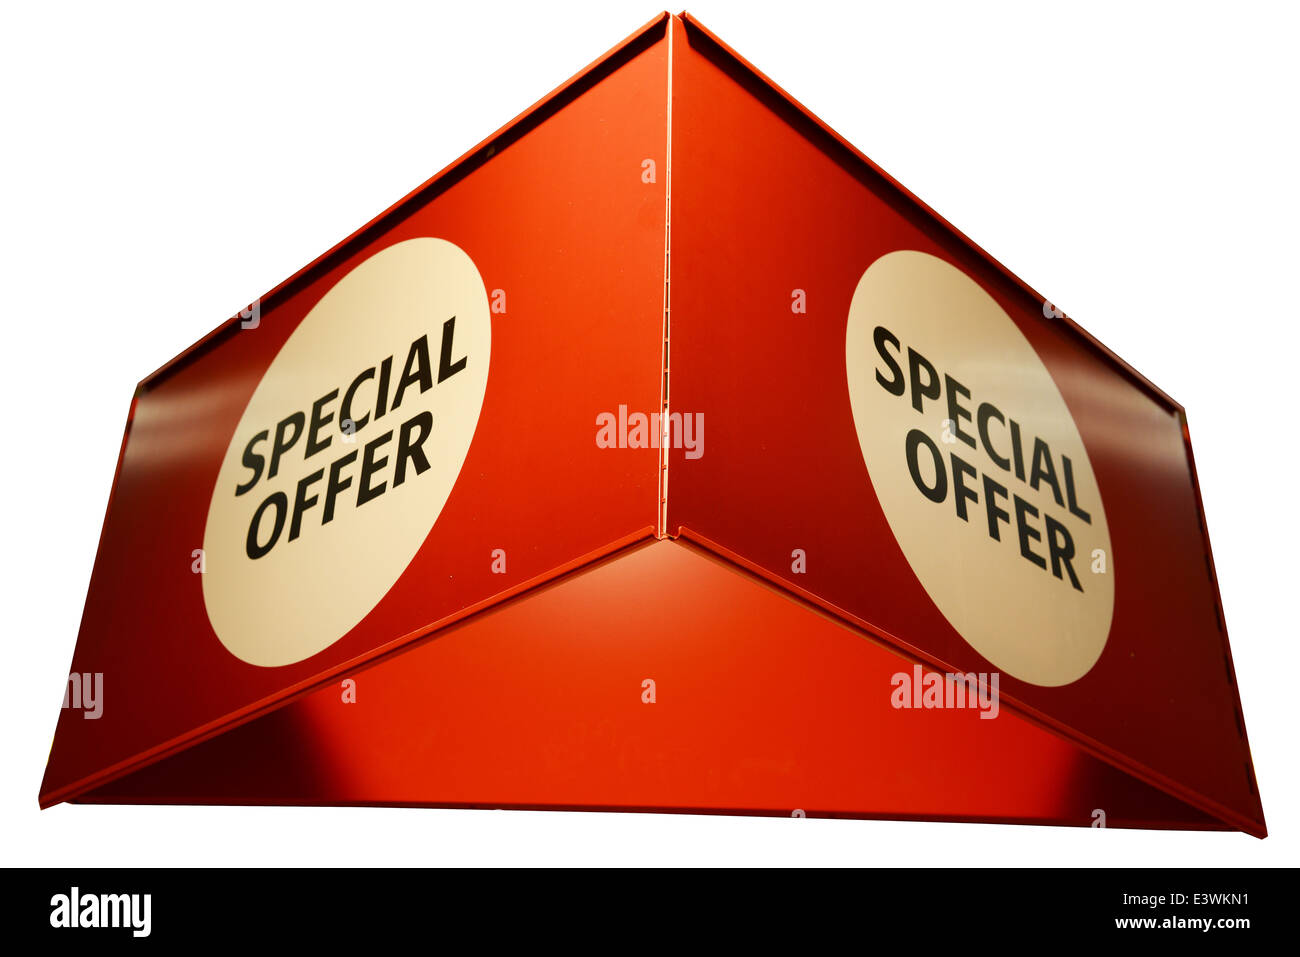 Special offer sign - Stock Image